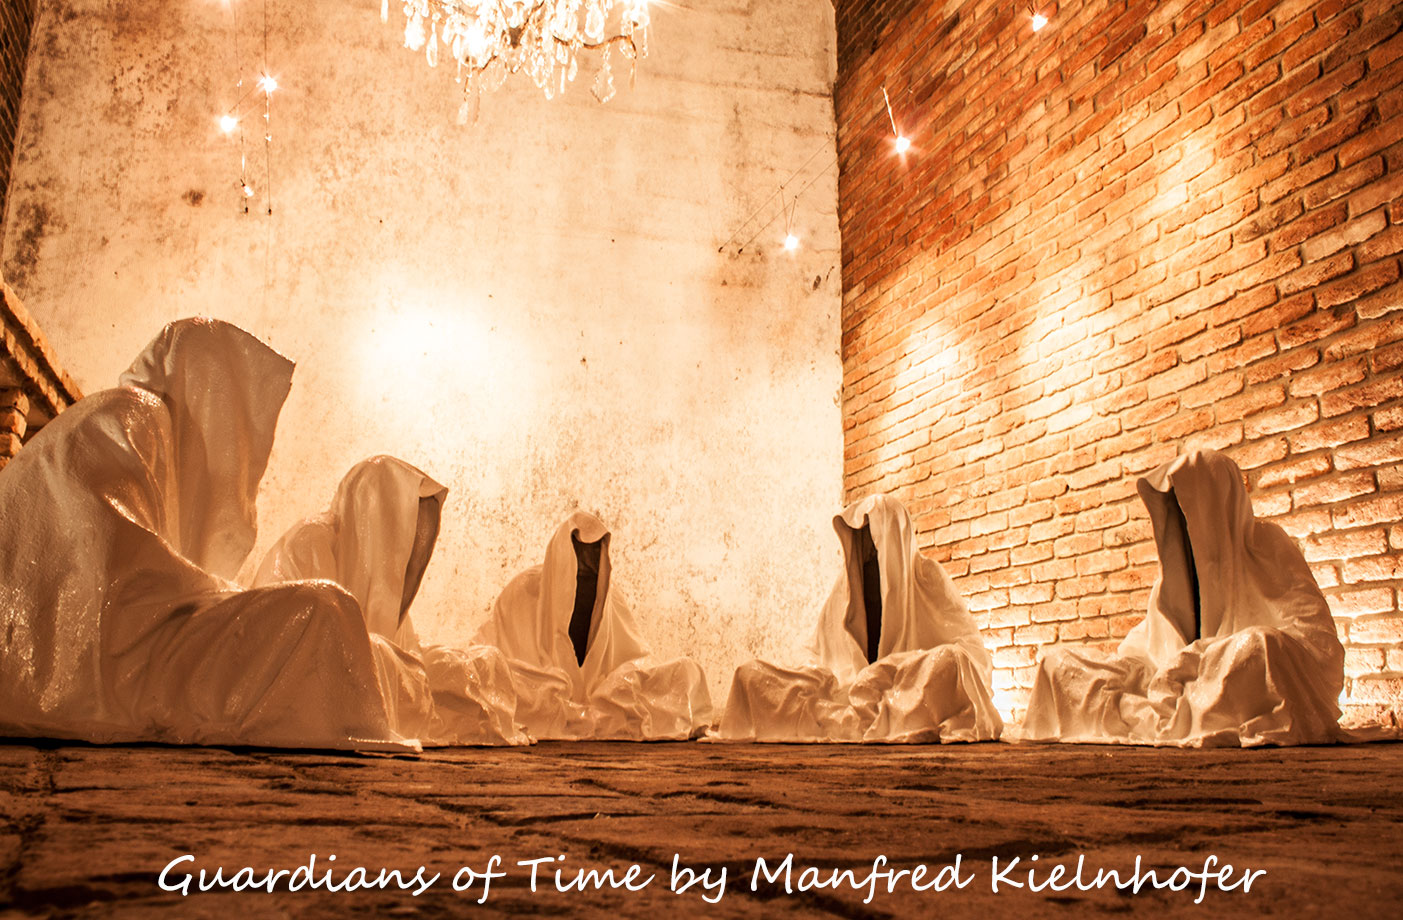 freller-art-dealer-kunsthandel-guardians-of-time-sculptor-manfred-kielnhofer-contemporary-modern-fine-arts-antique-sculpture-22256